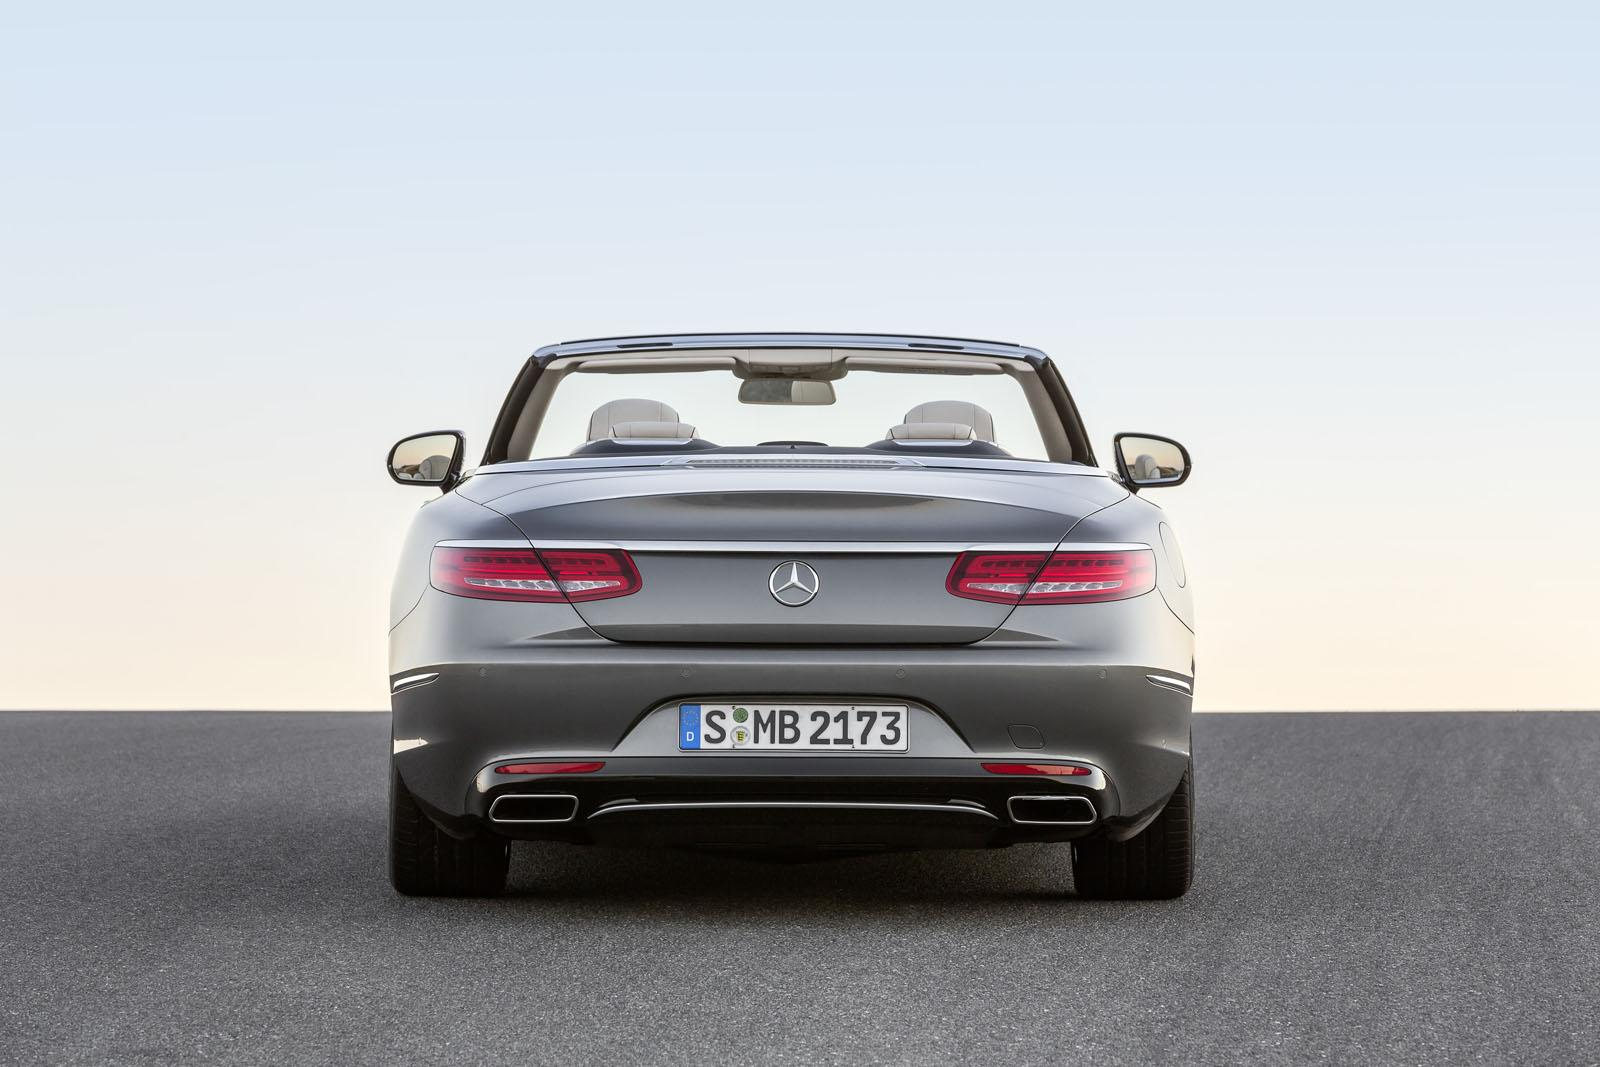 2016 Mercedes S Class Cabriolet rear unveiled